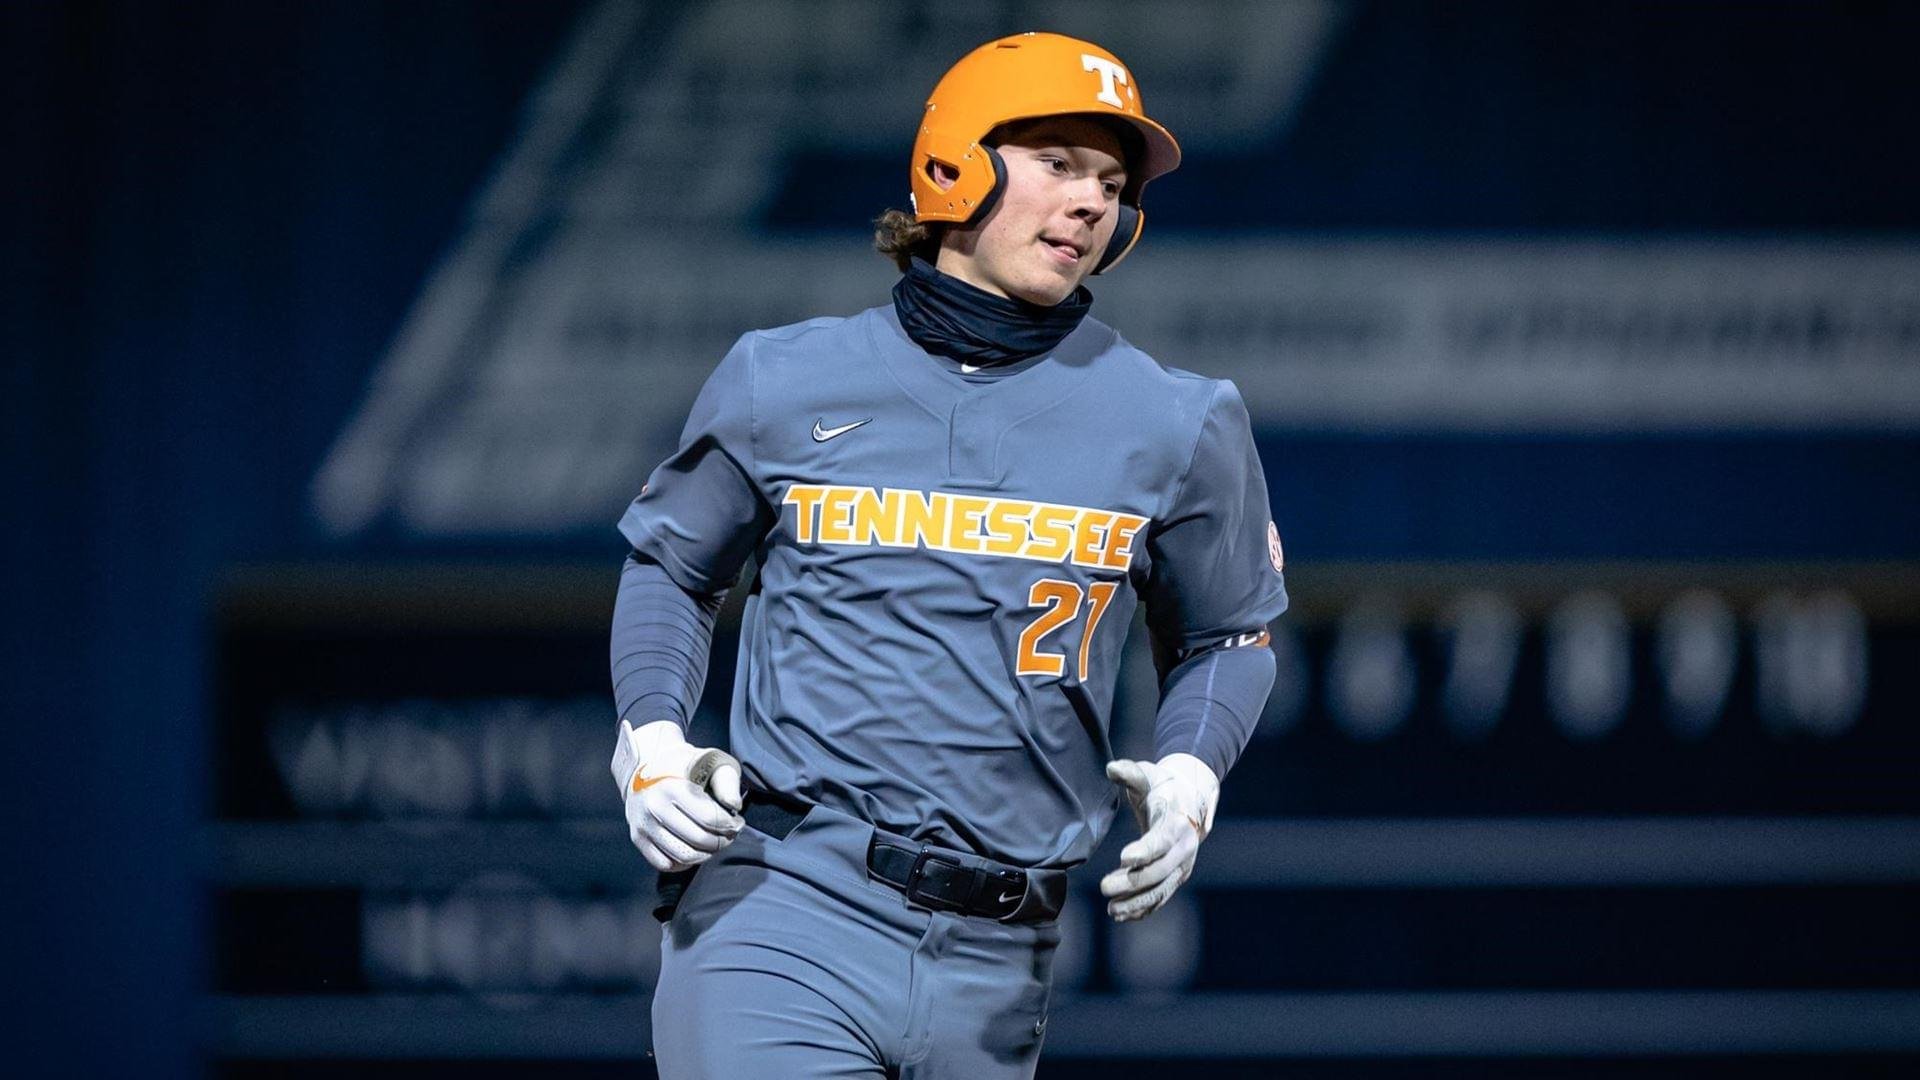 Beck Power Vols Past Georgia Southern in Season Opener